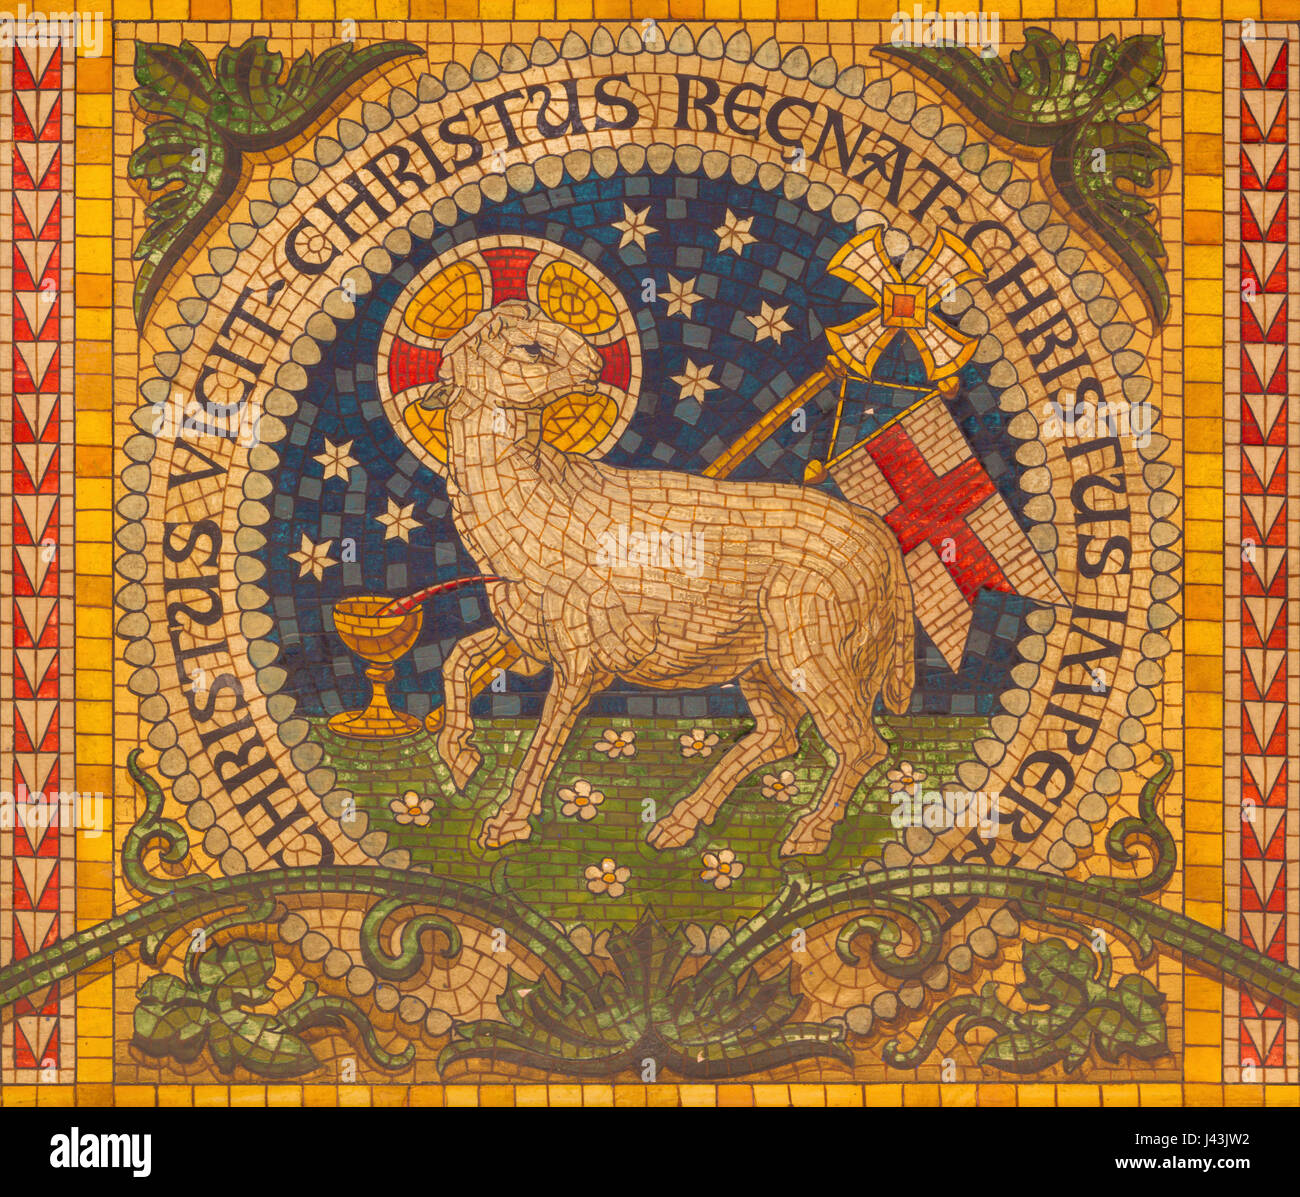 TURIN, ITALY - MARCH 15, 2017: The mosaic of Lamb of God on the altar of little chapel Capella Pinardi - the first - Stock Image